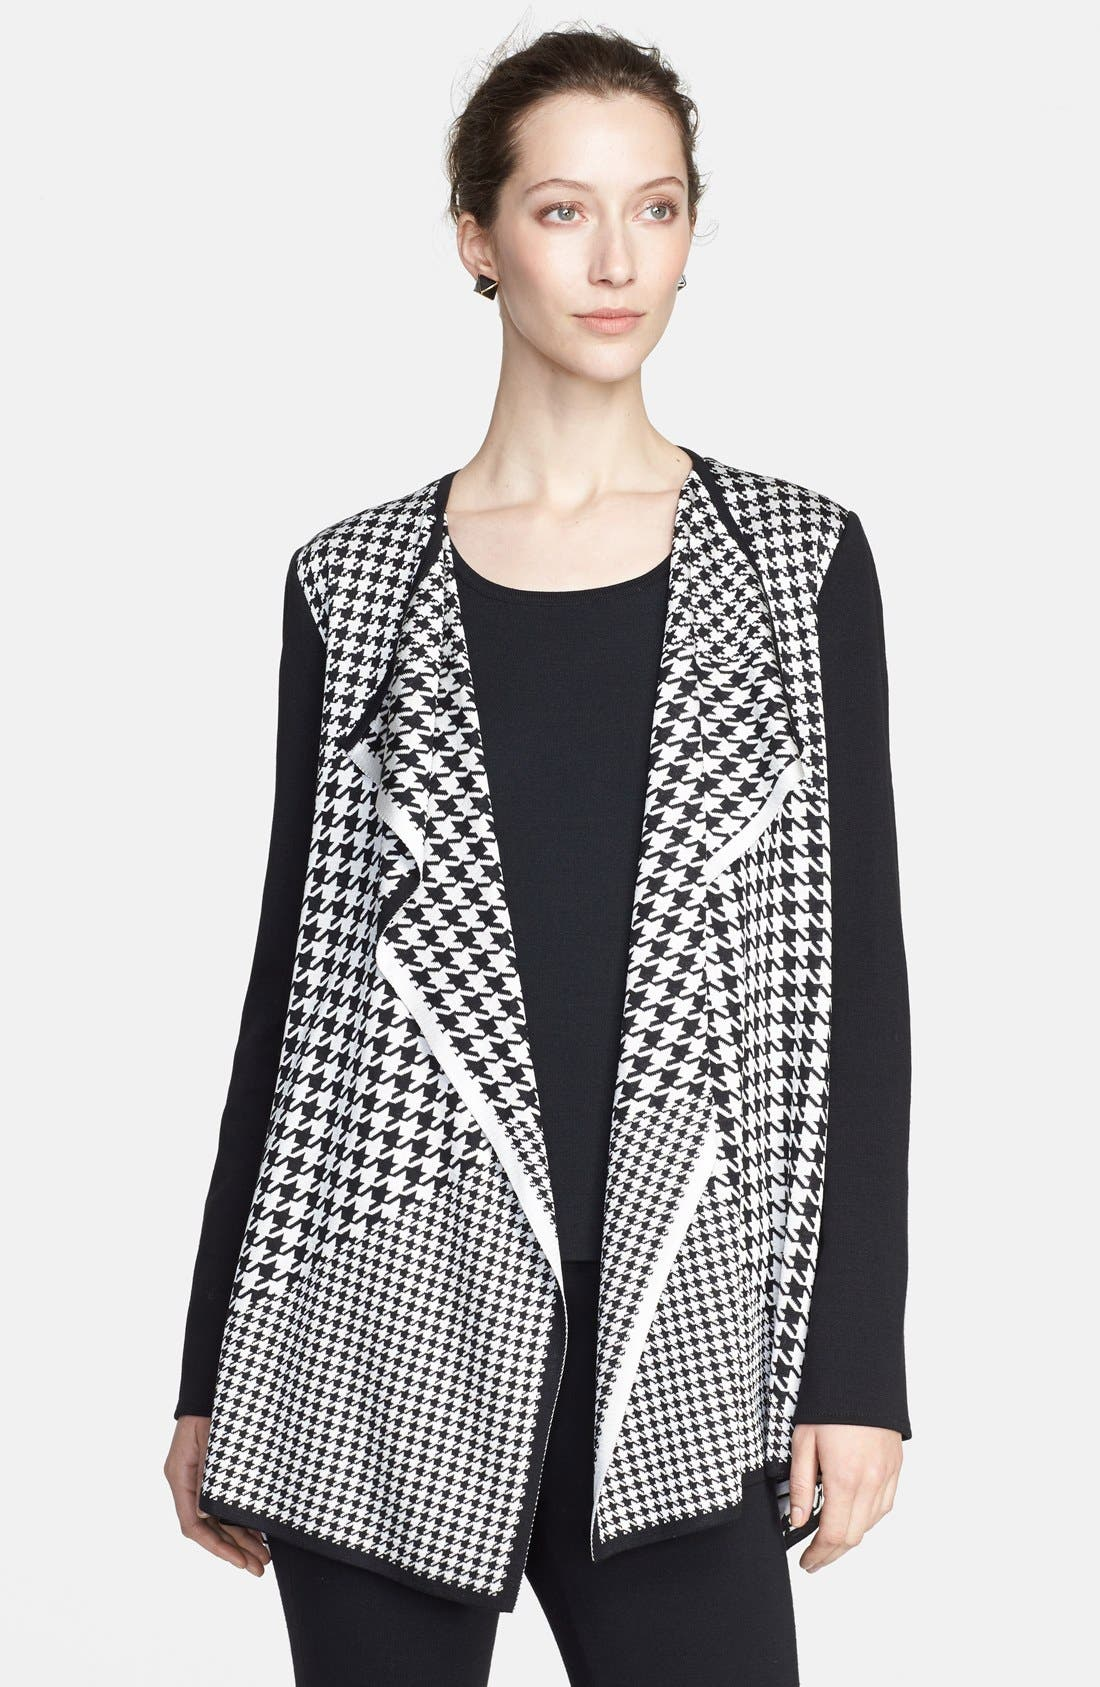 Alternate Image 1 Selected - St. John Collection Multi Scale Houndstooth Jacquard Knit Cardigan